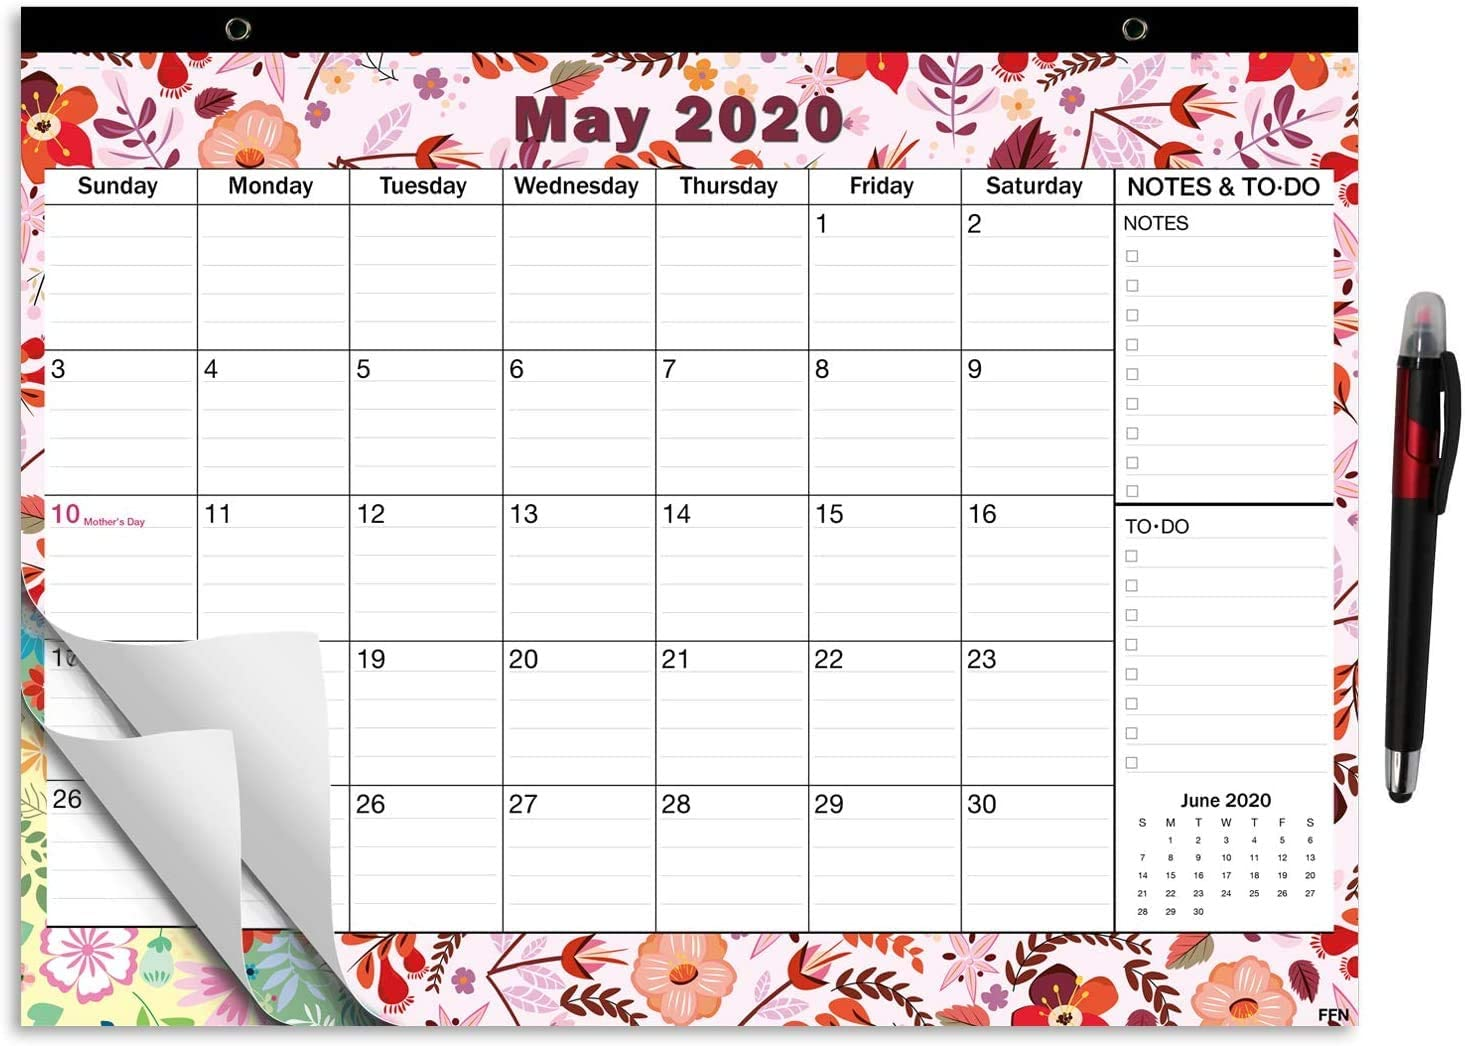 2020-2021 Large Monthly Desk Pad Calendar Planner Academic, Floral Design with Magnets for Fridge, Desktop January 2020 to June 2021 Wall Calendar 17.3